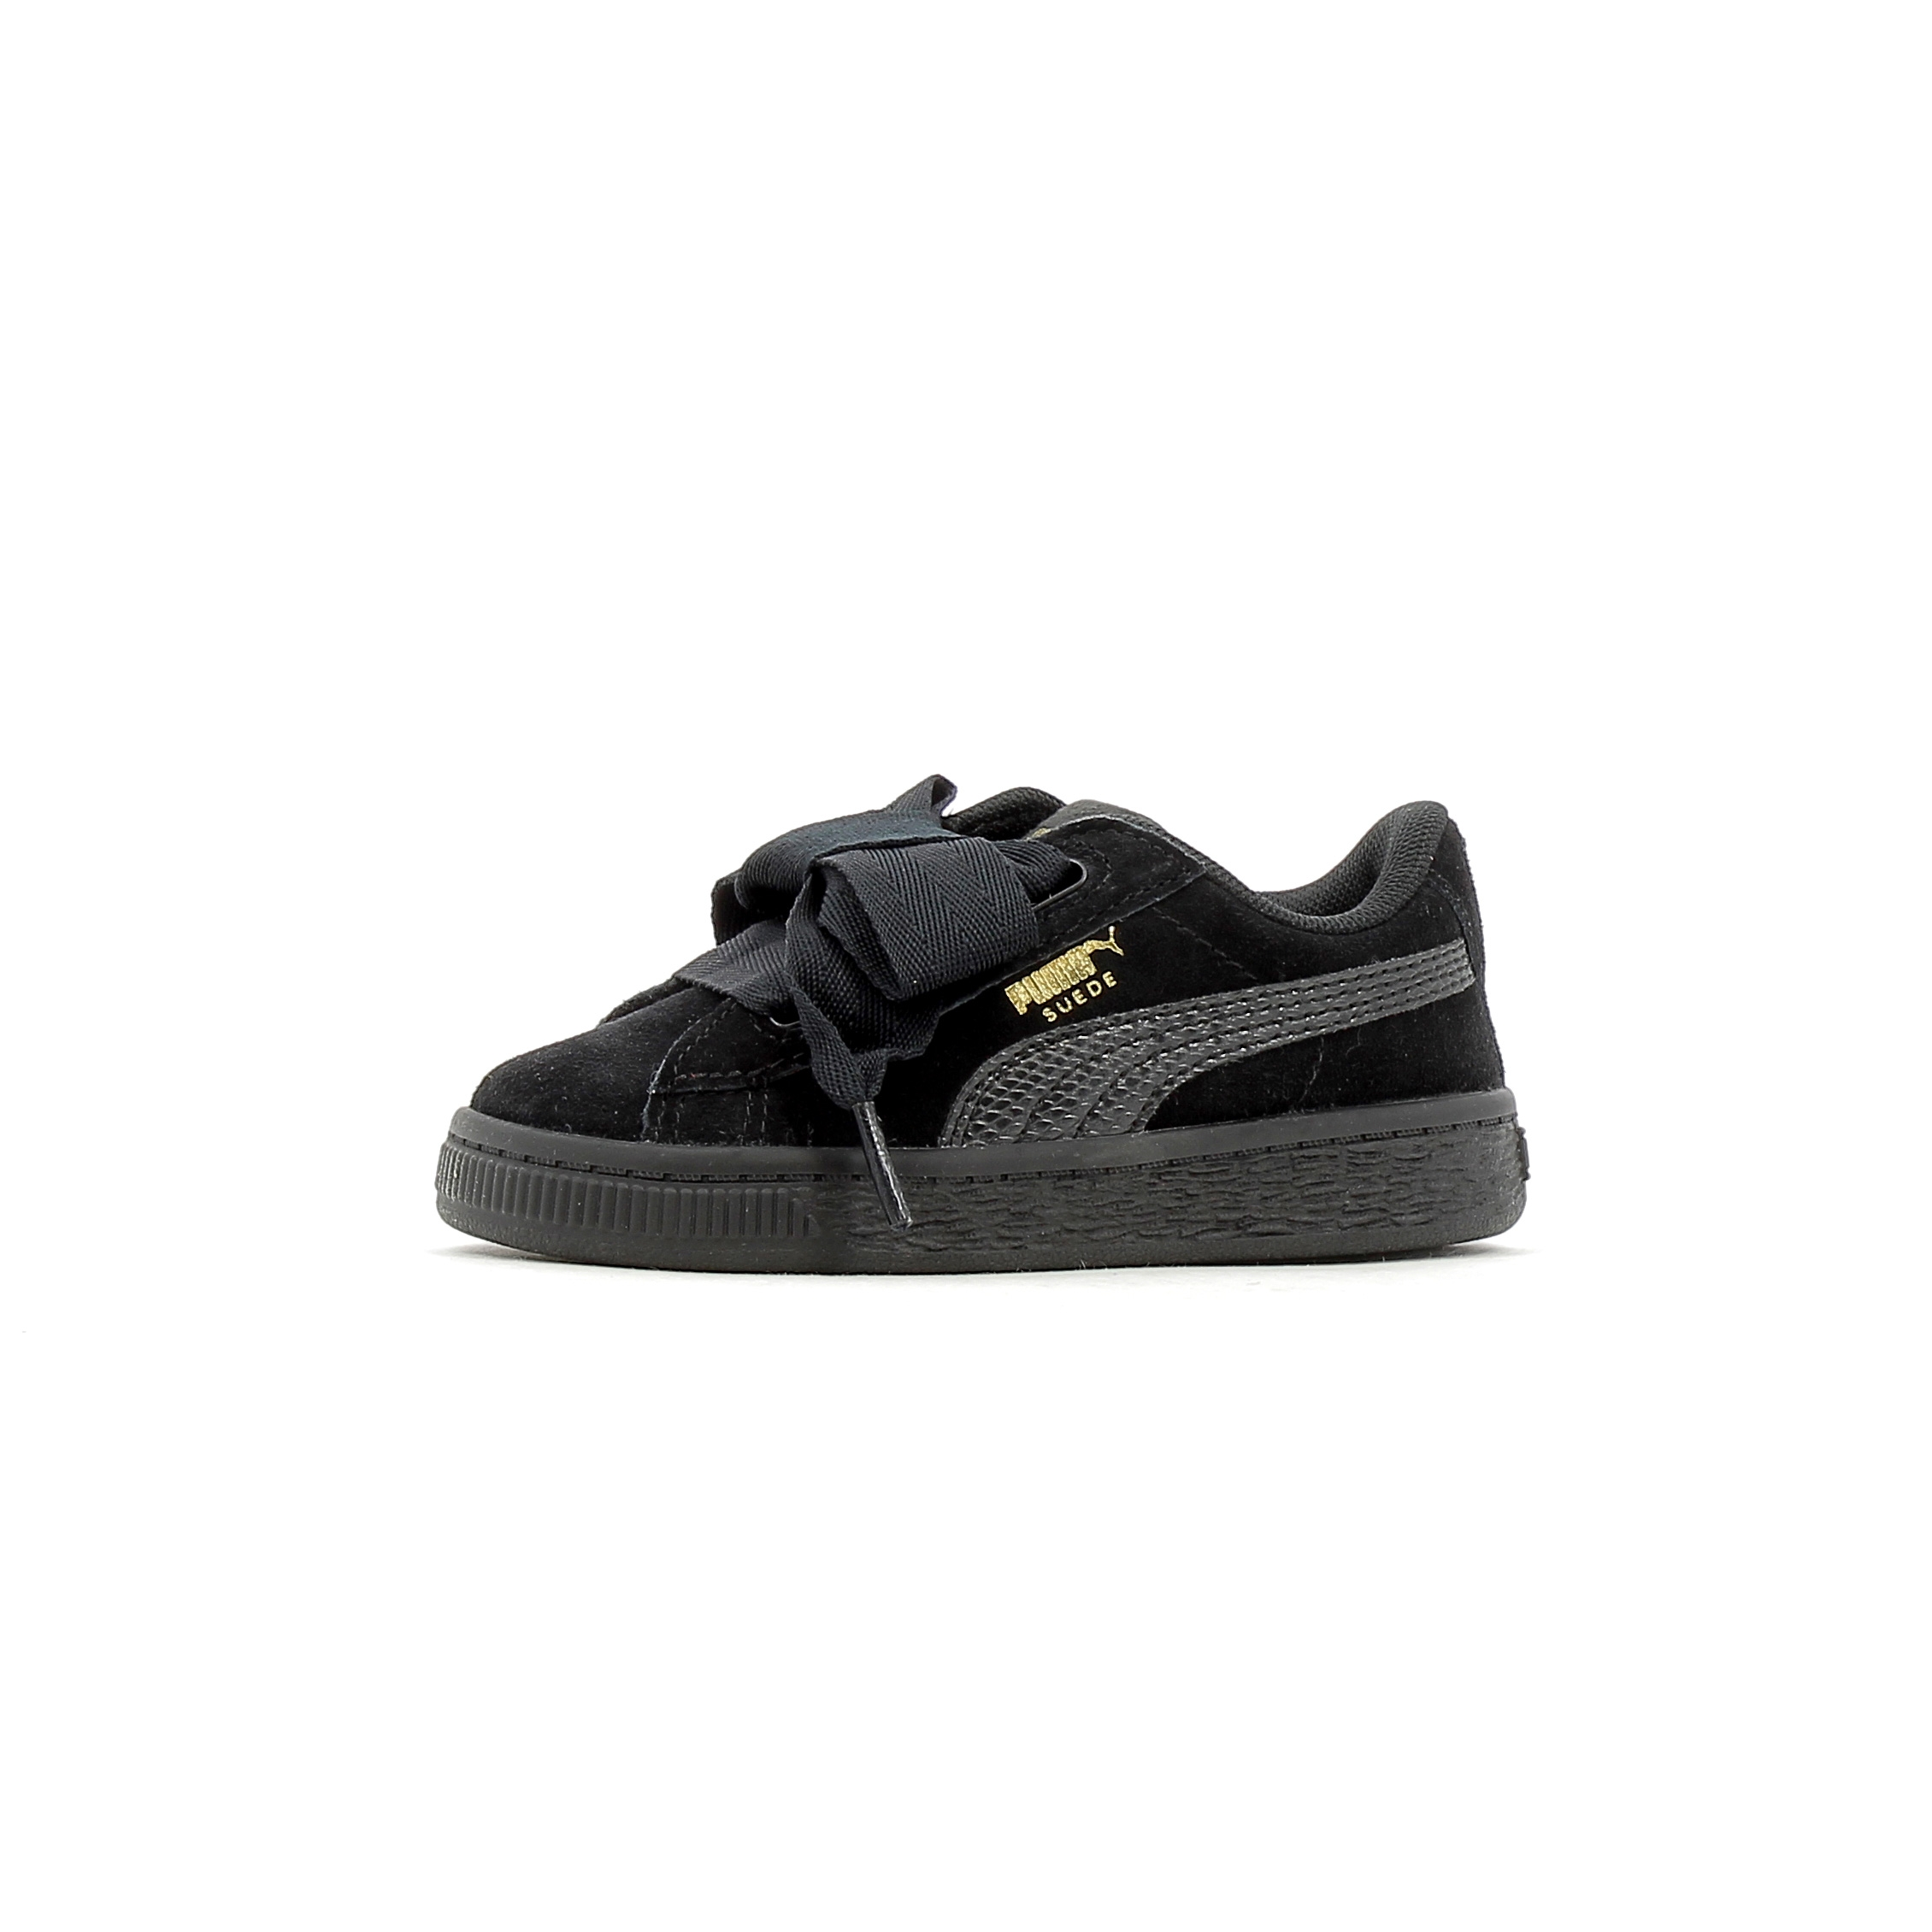 check out 0c7c1 27eda Baskets basses Puma Inf Suede Heart SNK Baby